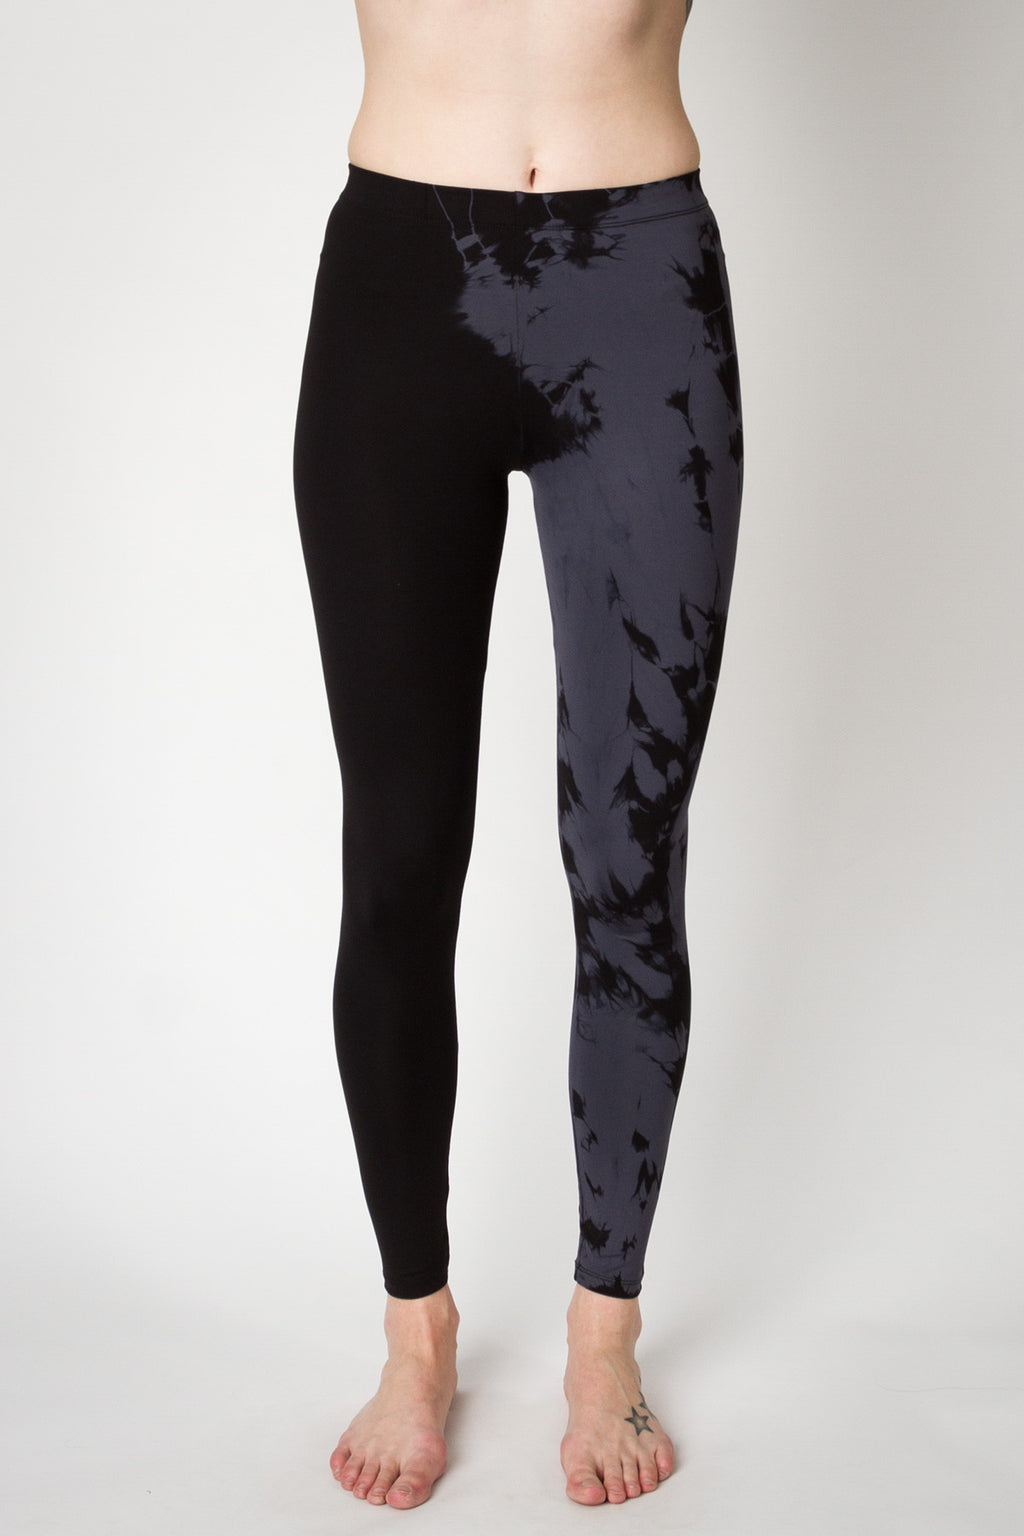 Daub + Design Adriana Legging Charcoal Sweat Society Canada US